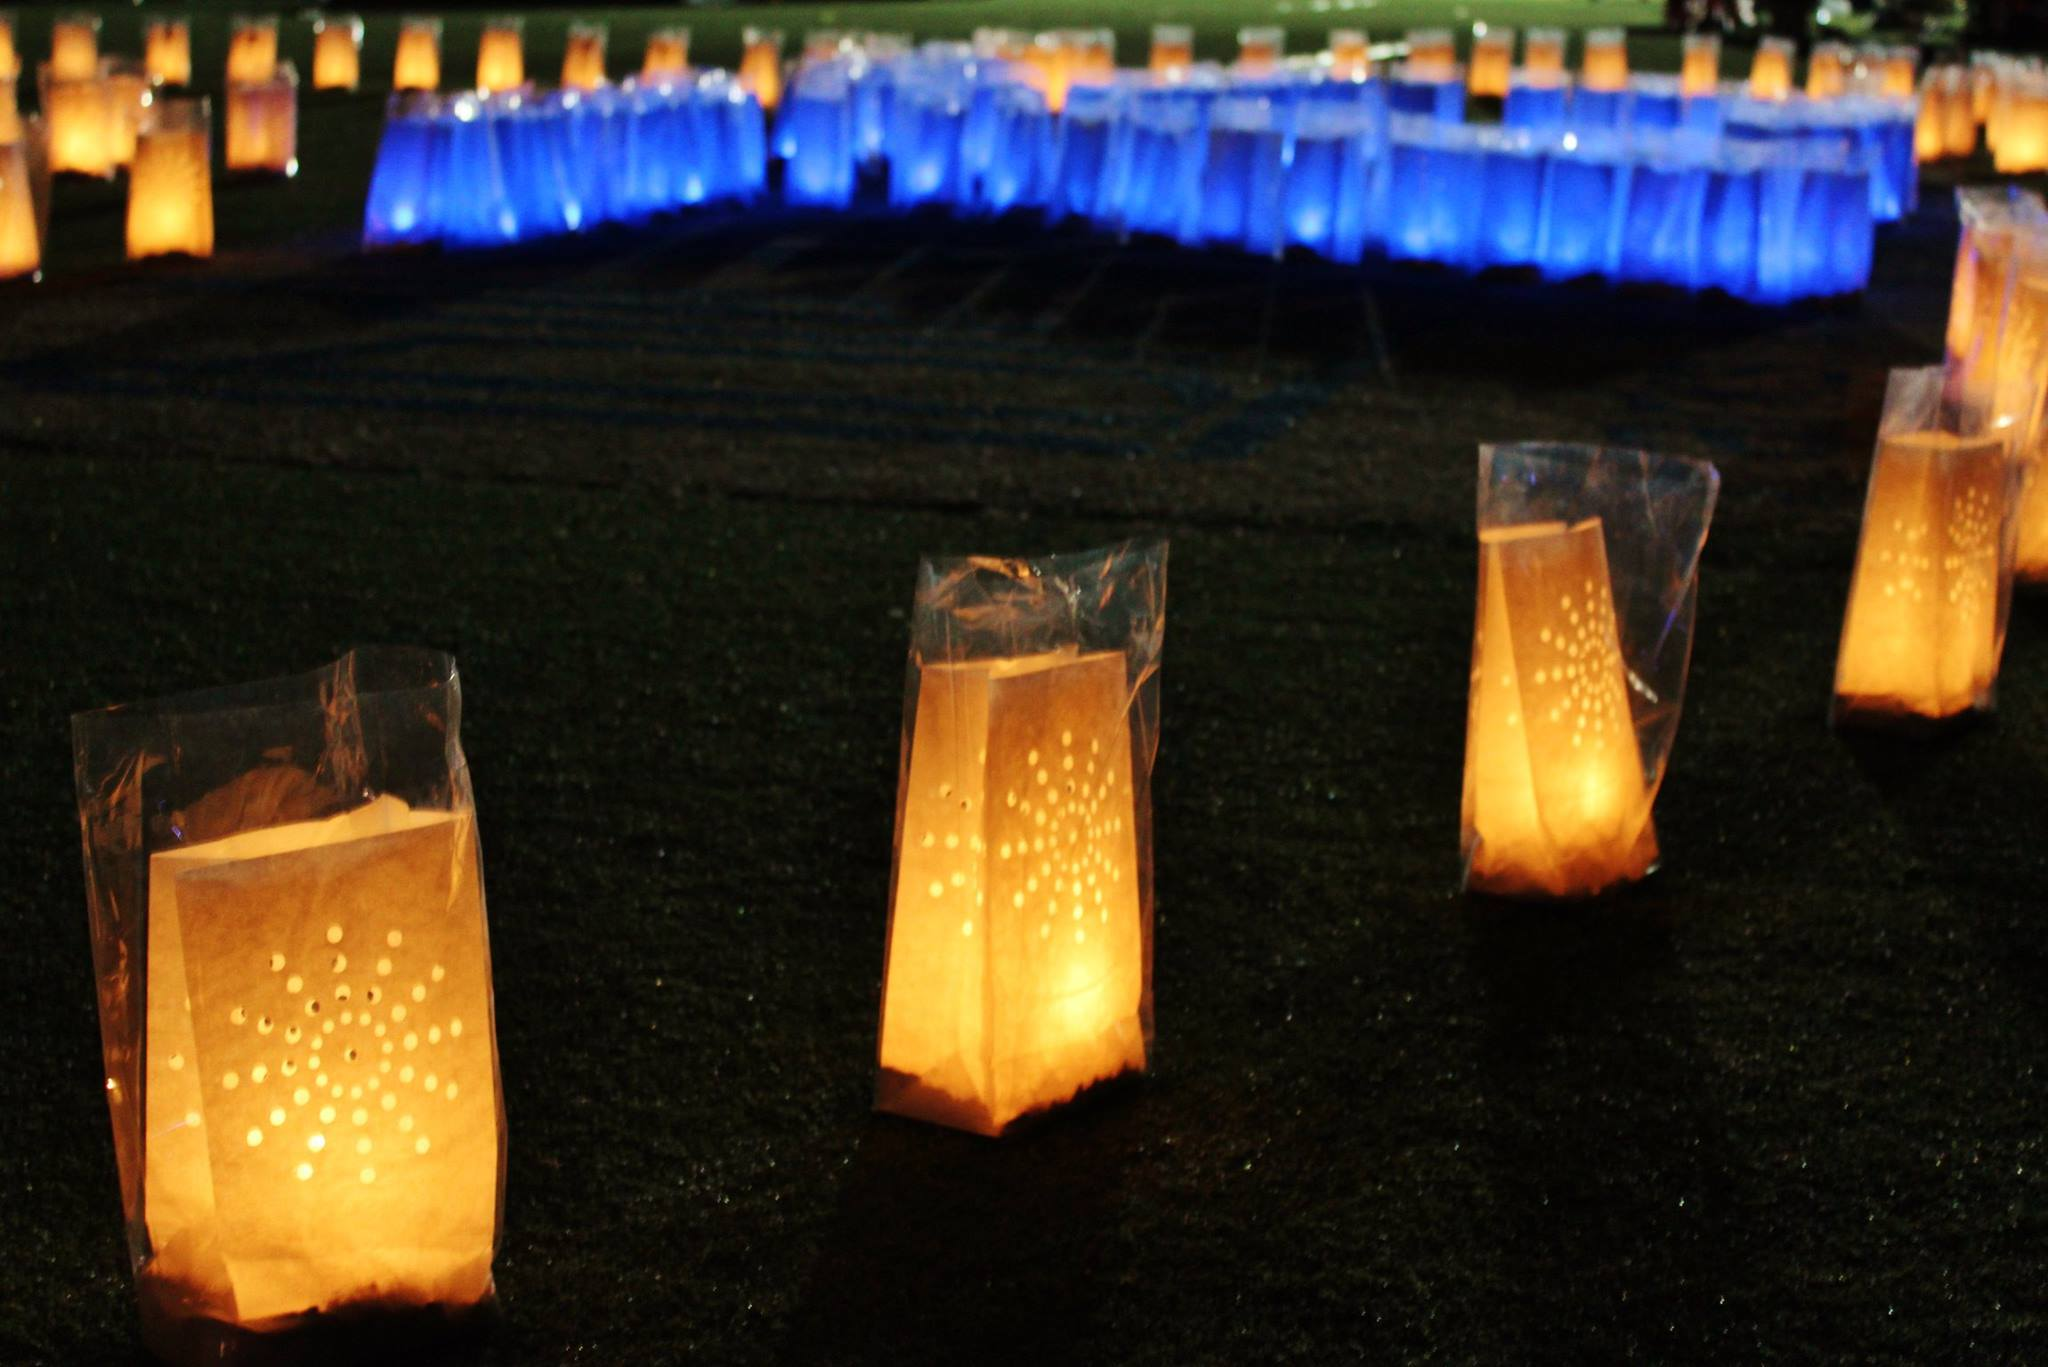 Relay for Life scaled down this year